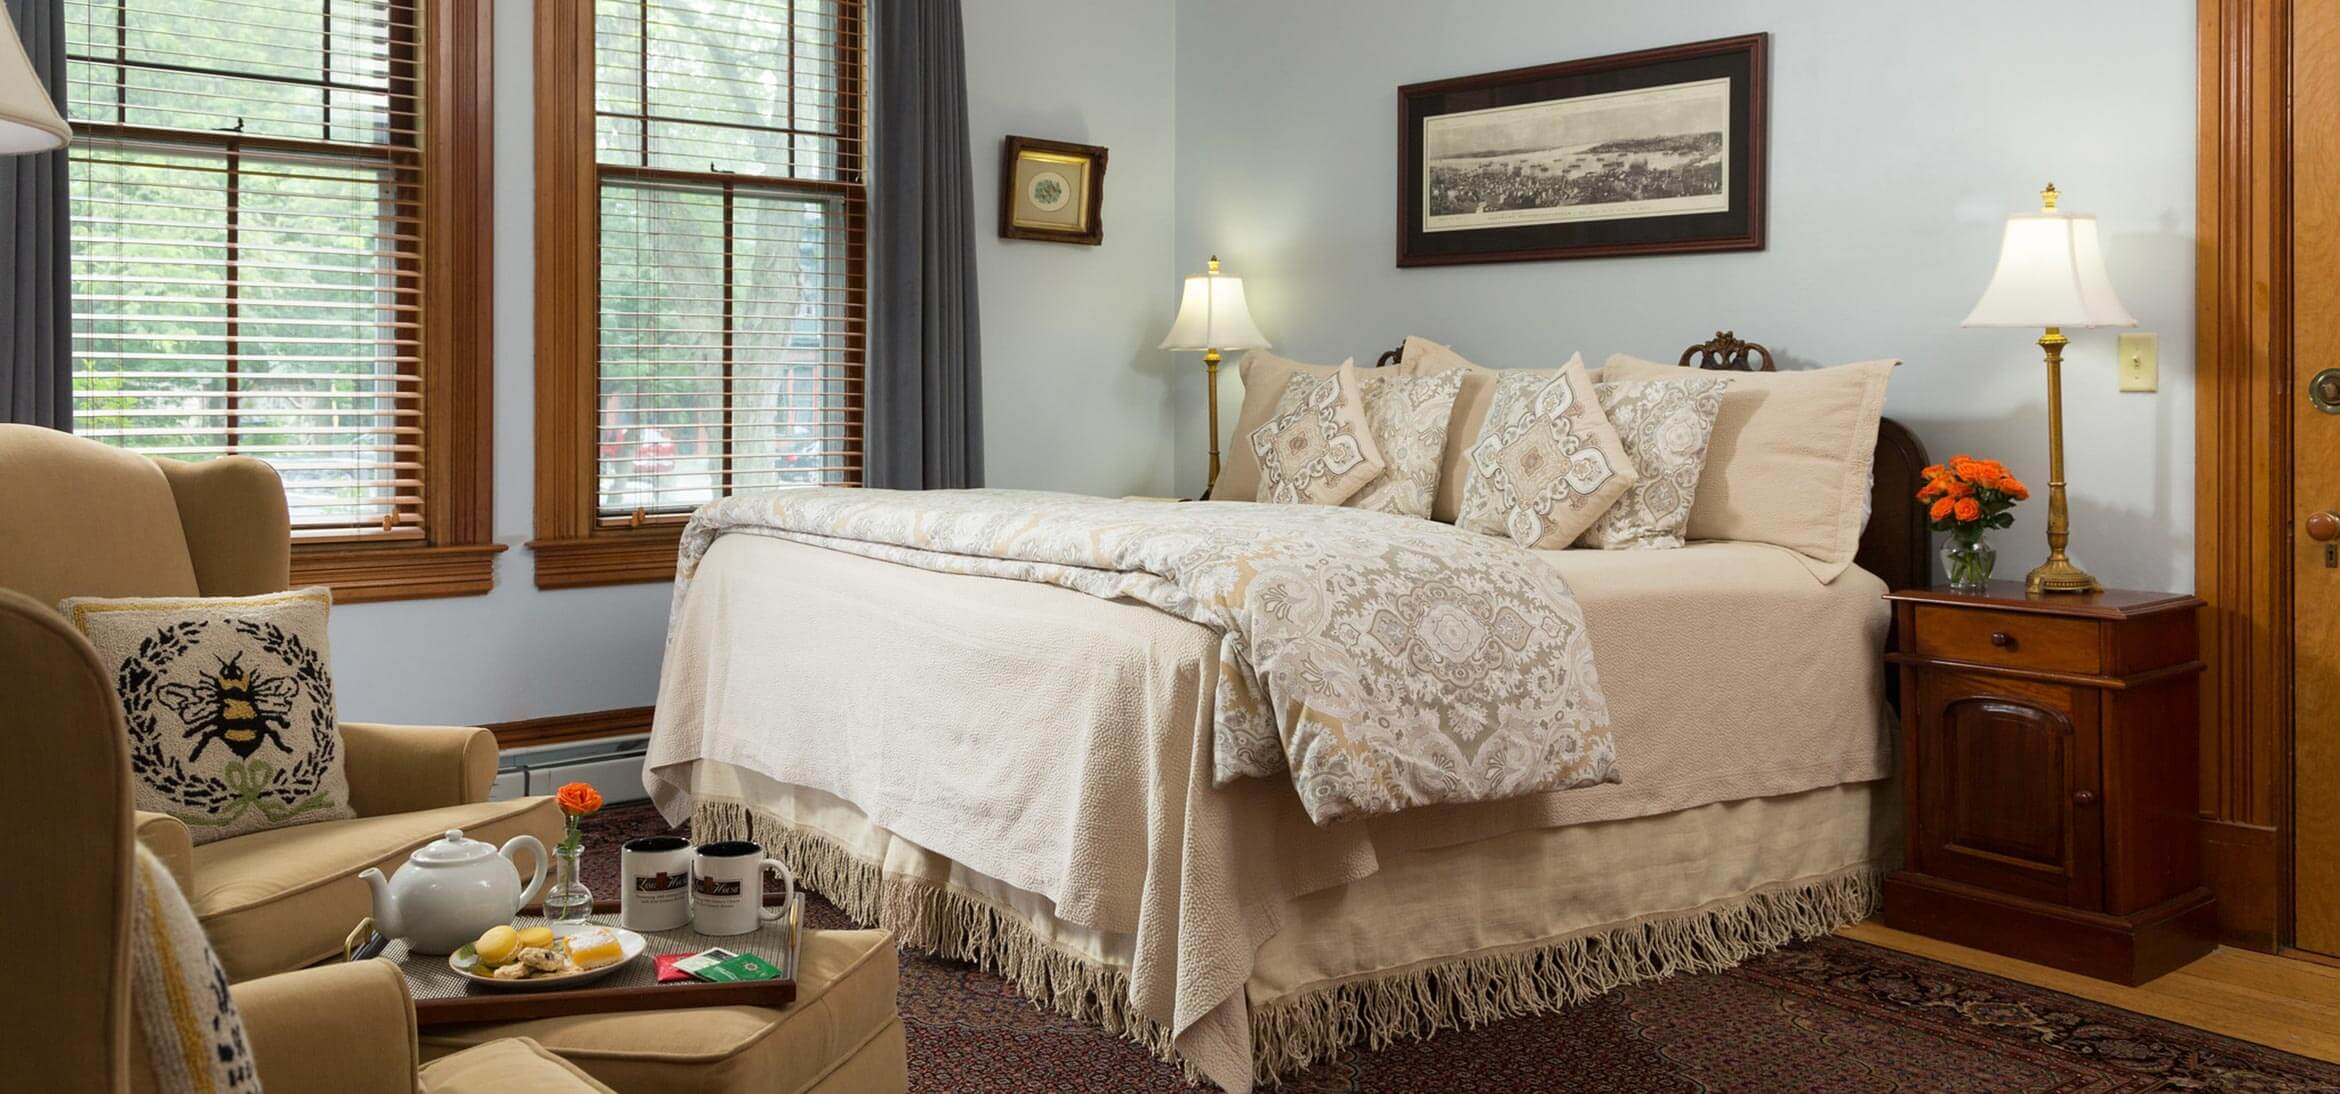 Reed Room bed